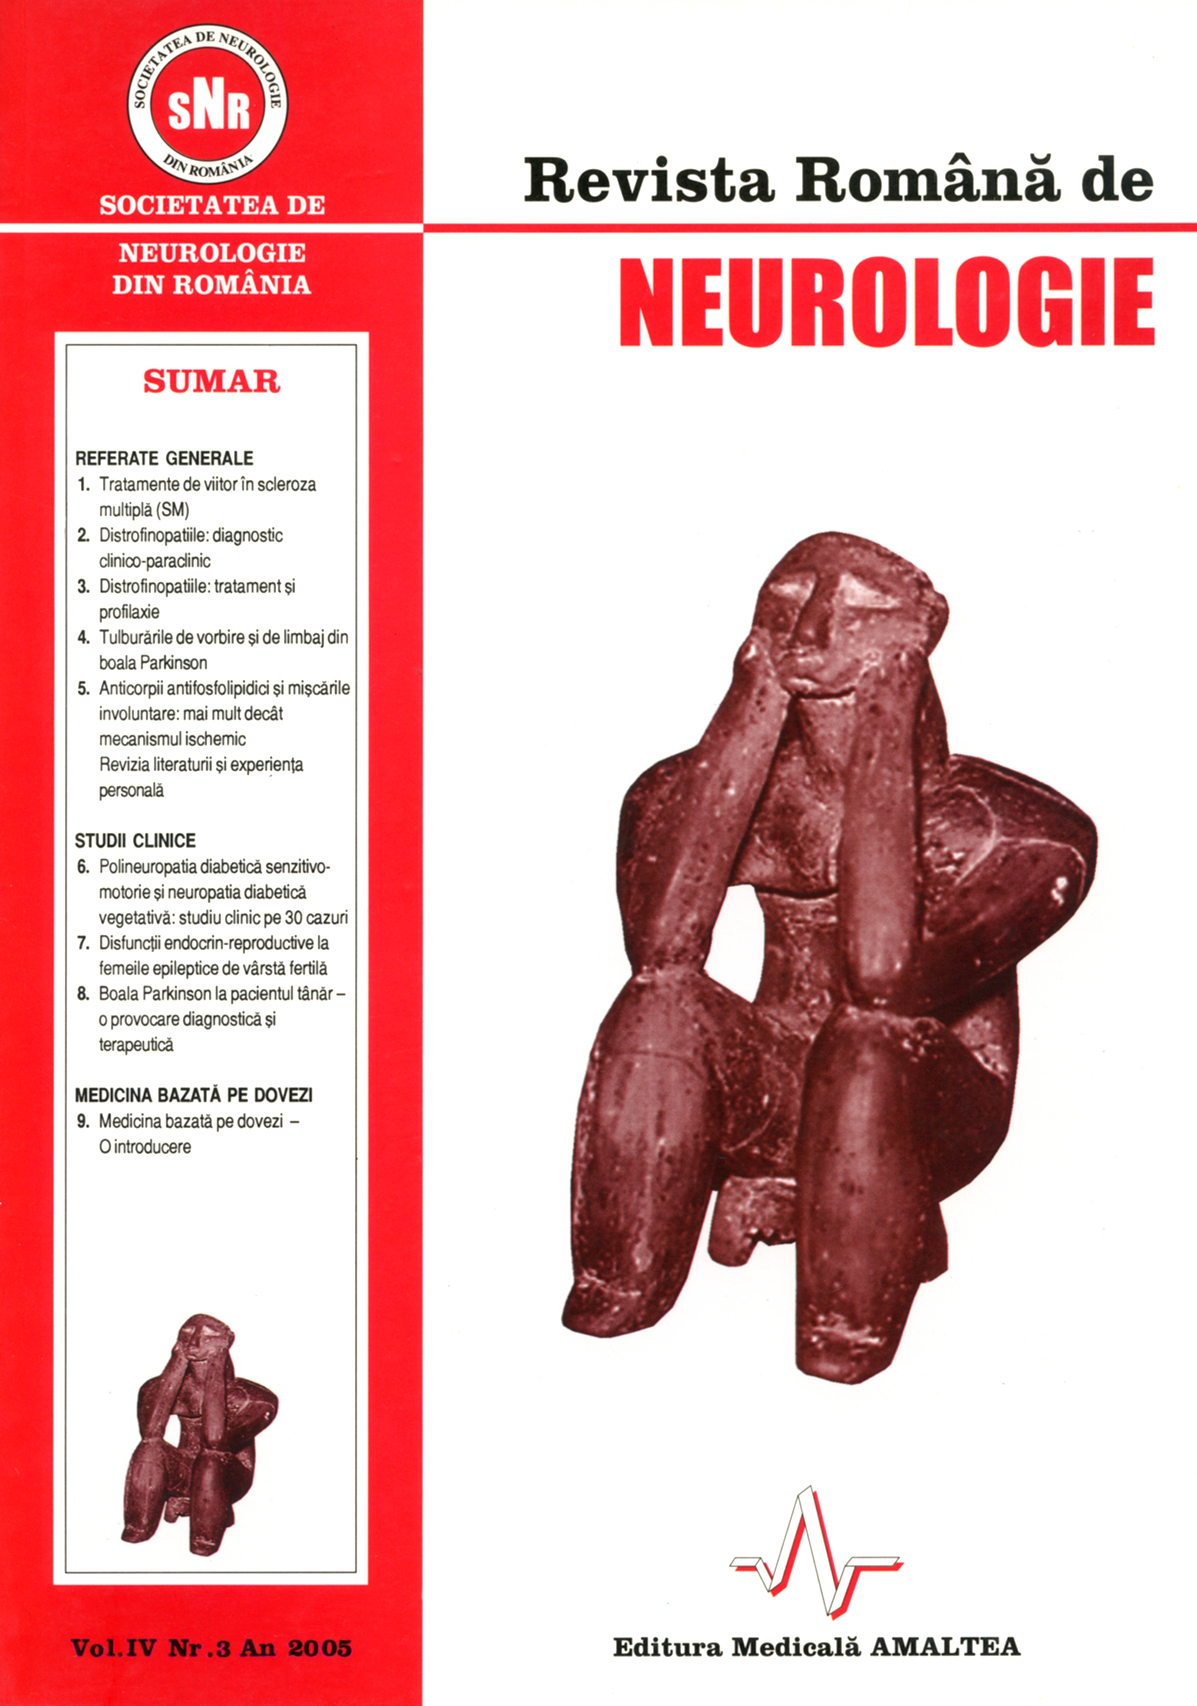 Romanian Journal of Neurology, Volume IV, No. 3, 2005